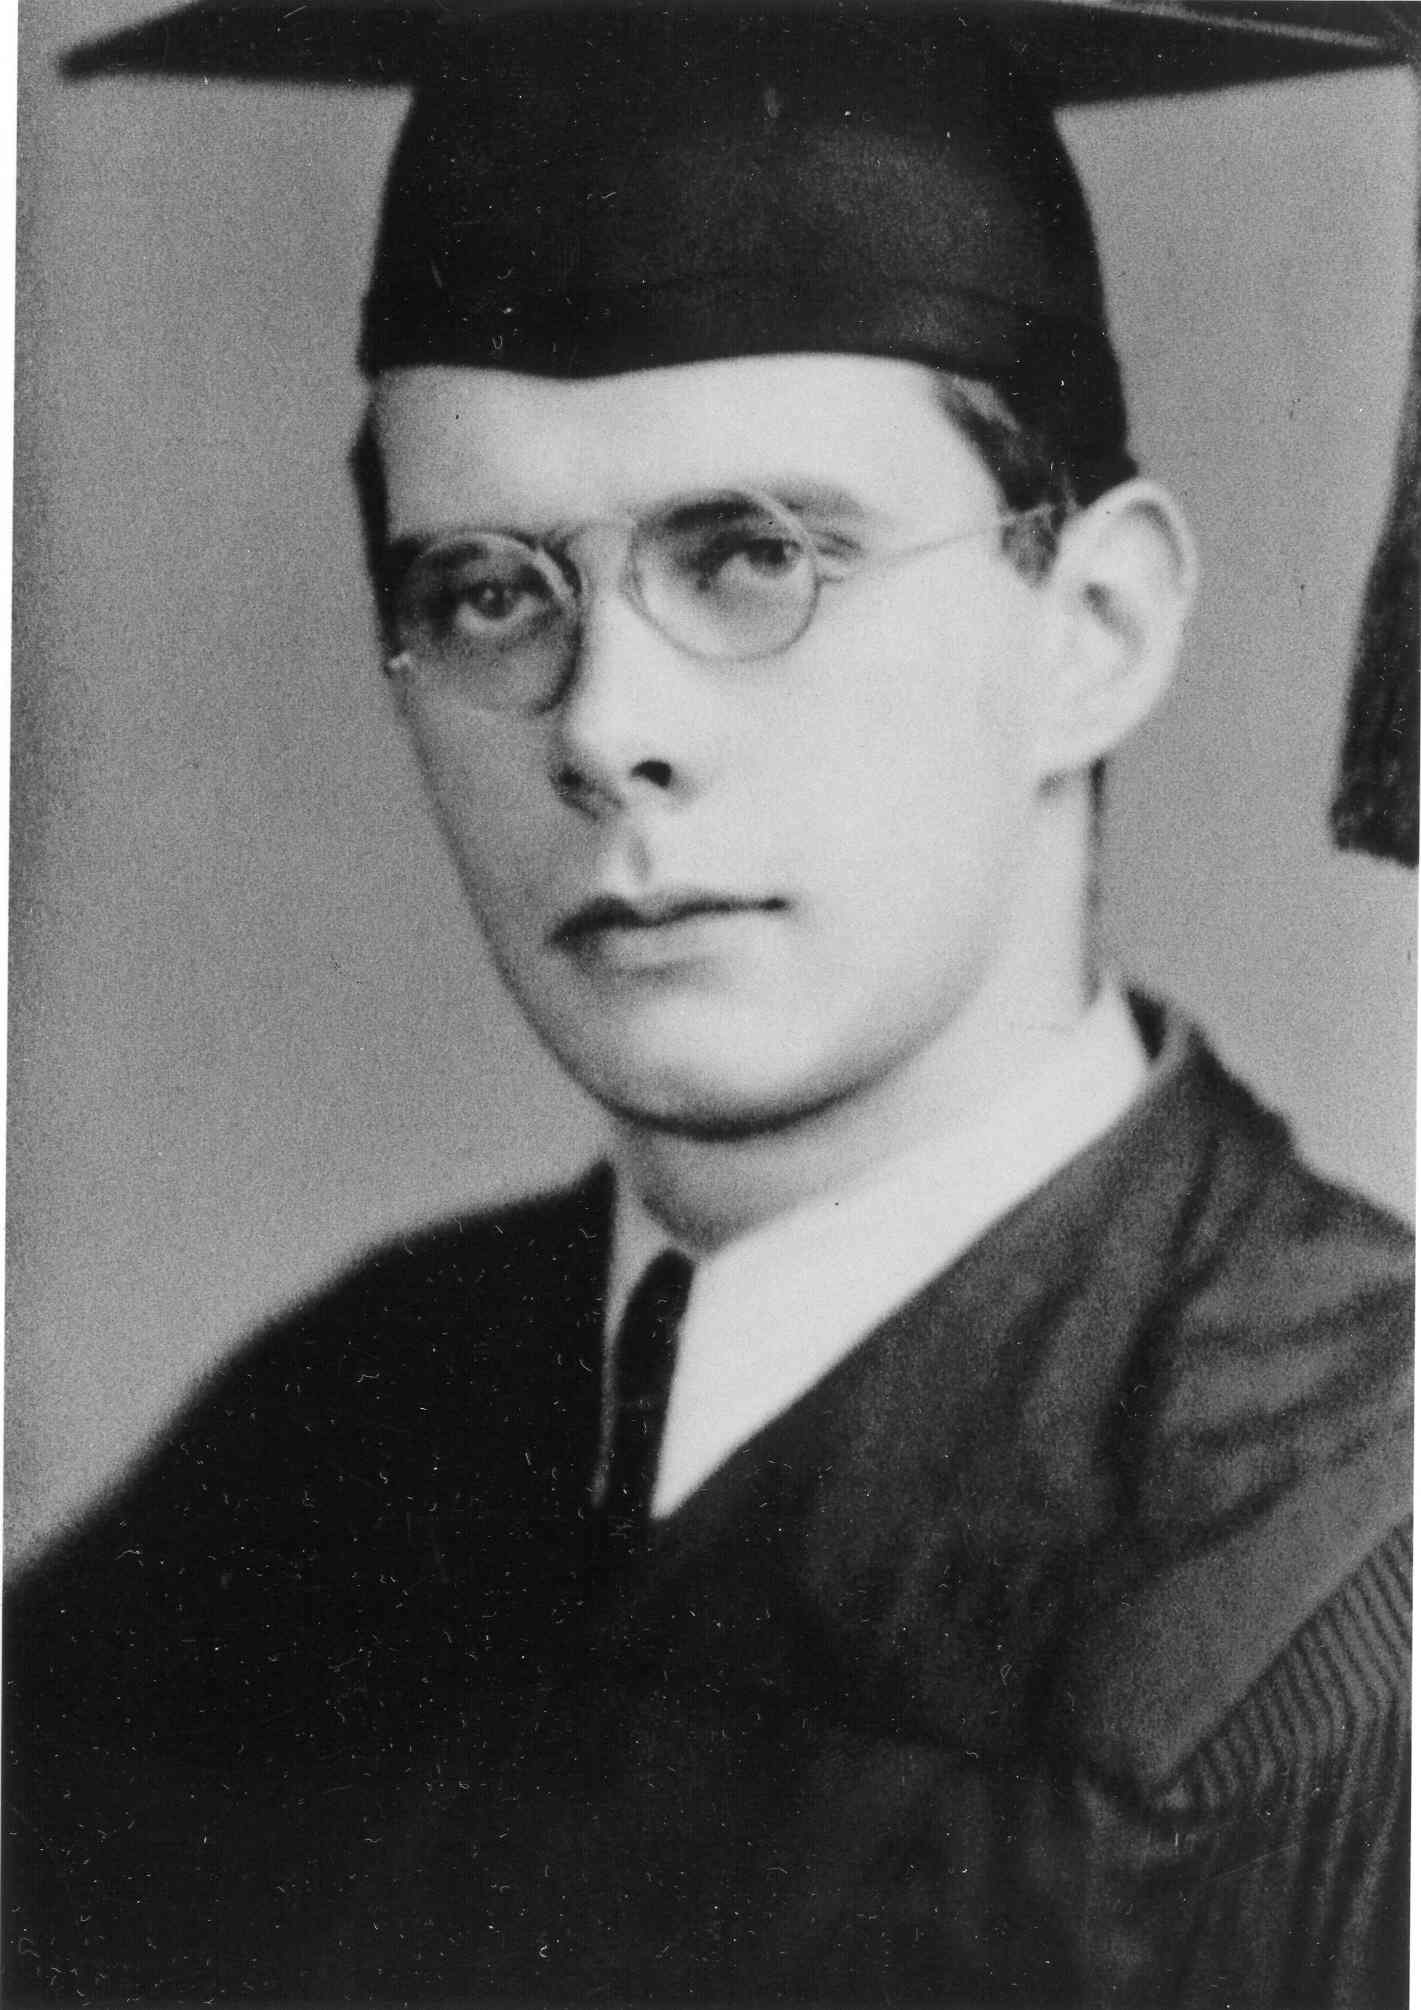 Irving Howe upon his graduation from CCNY.